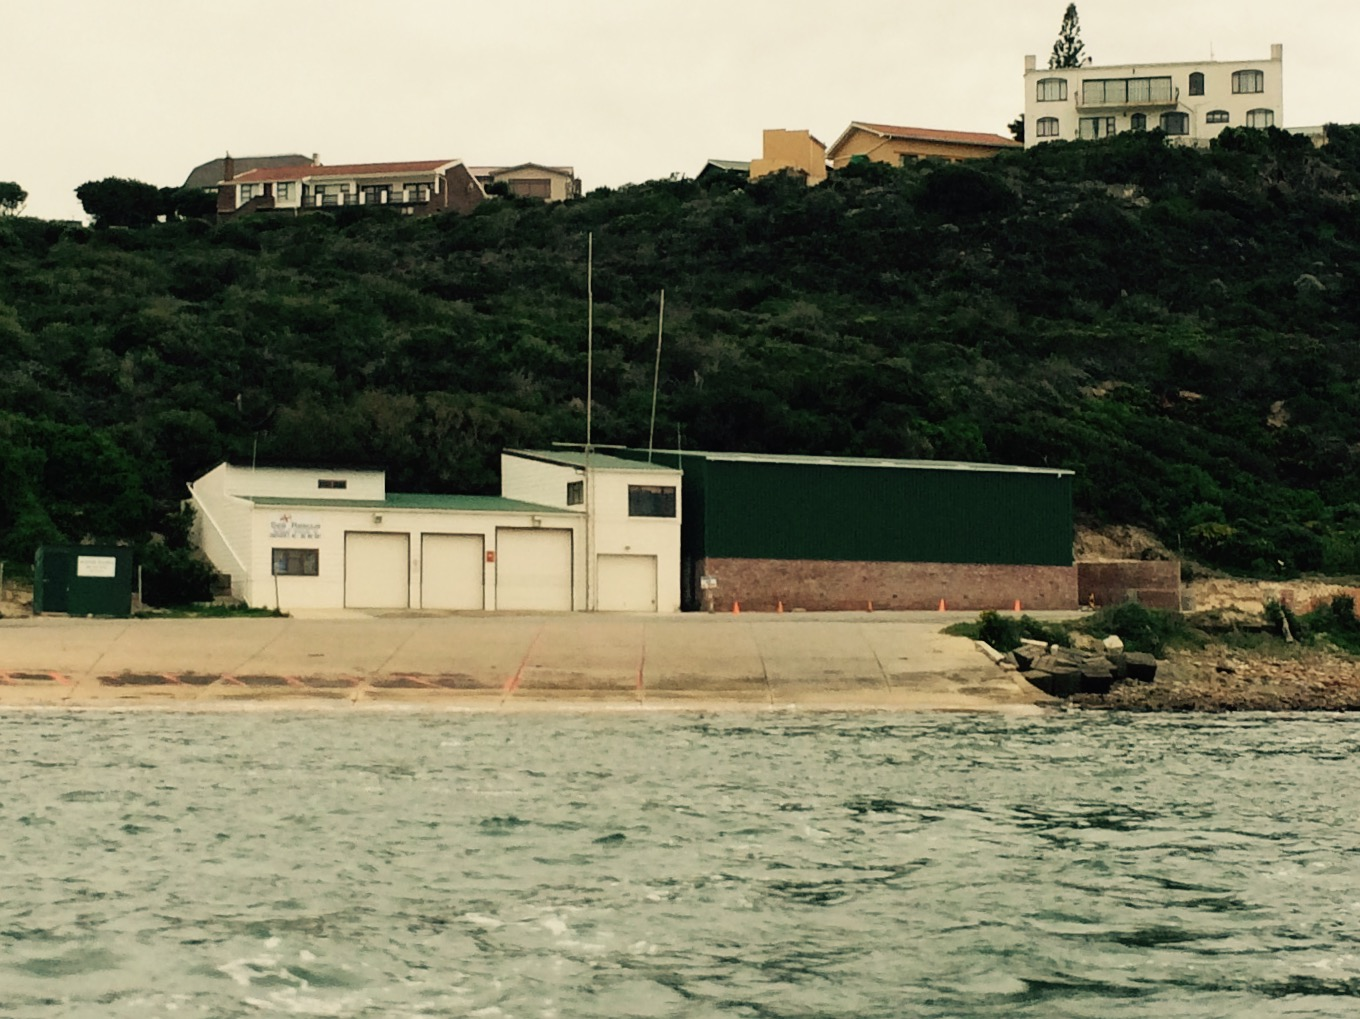 The revamped Witsand Rescue base.